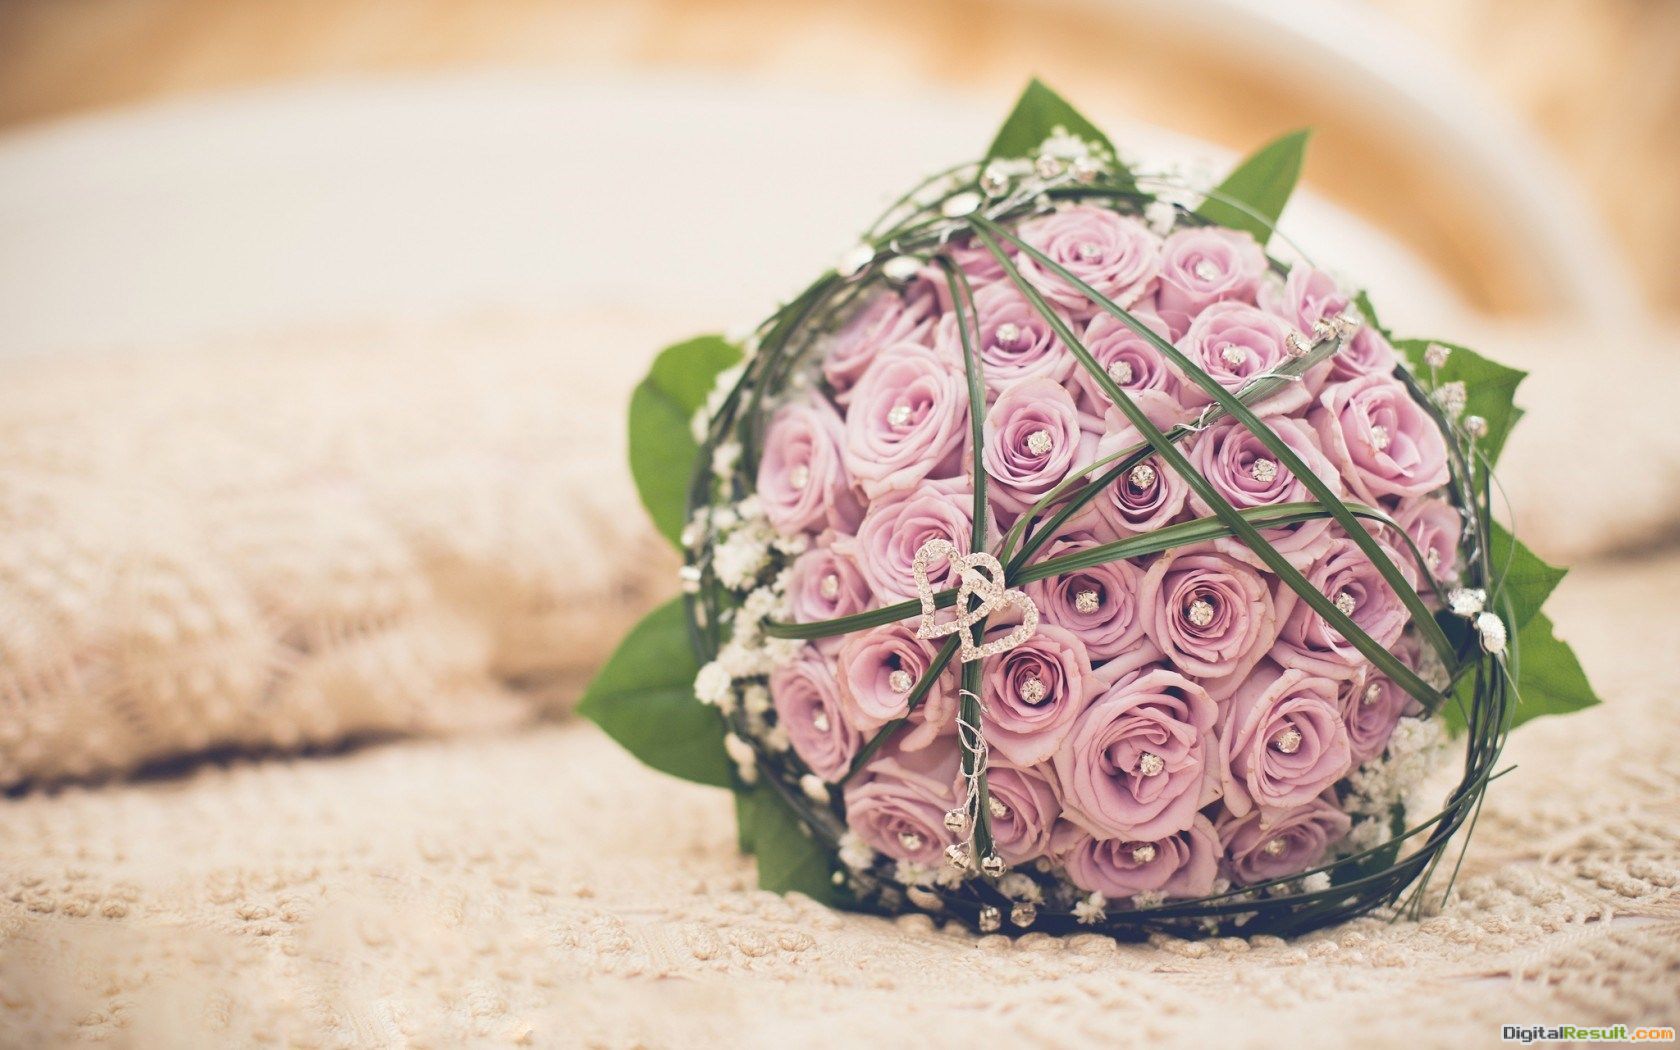 Bouquet Wedding Flowers Roses Hearts Love #6914403 1695